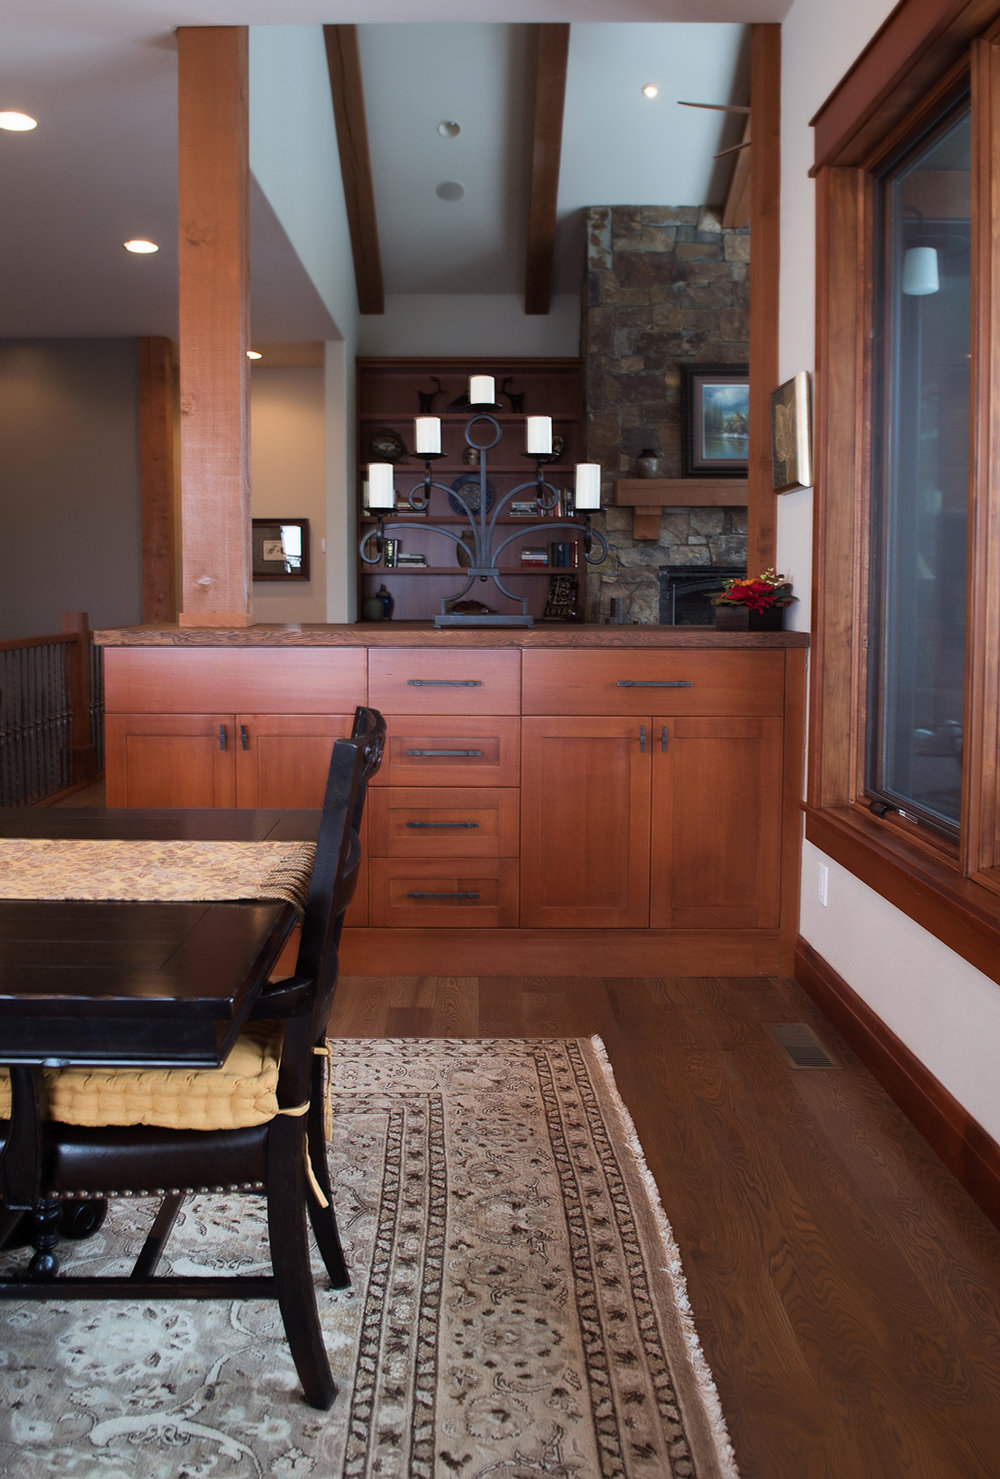 Woodworks-West-Bozeman-Montana-Builder-Cabinetry-Remodel-New-Construction-3519.jpg